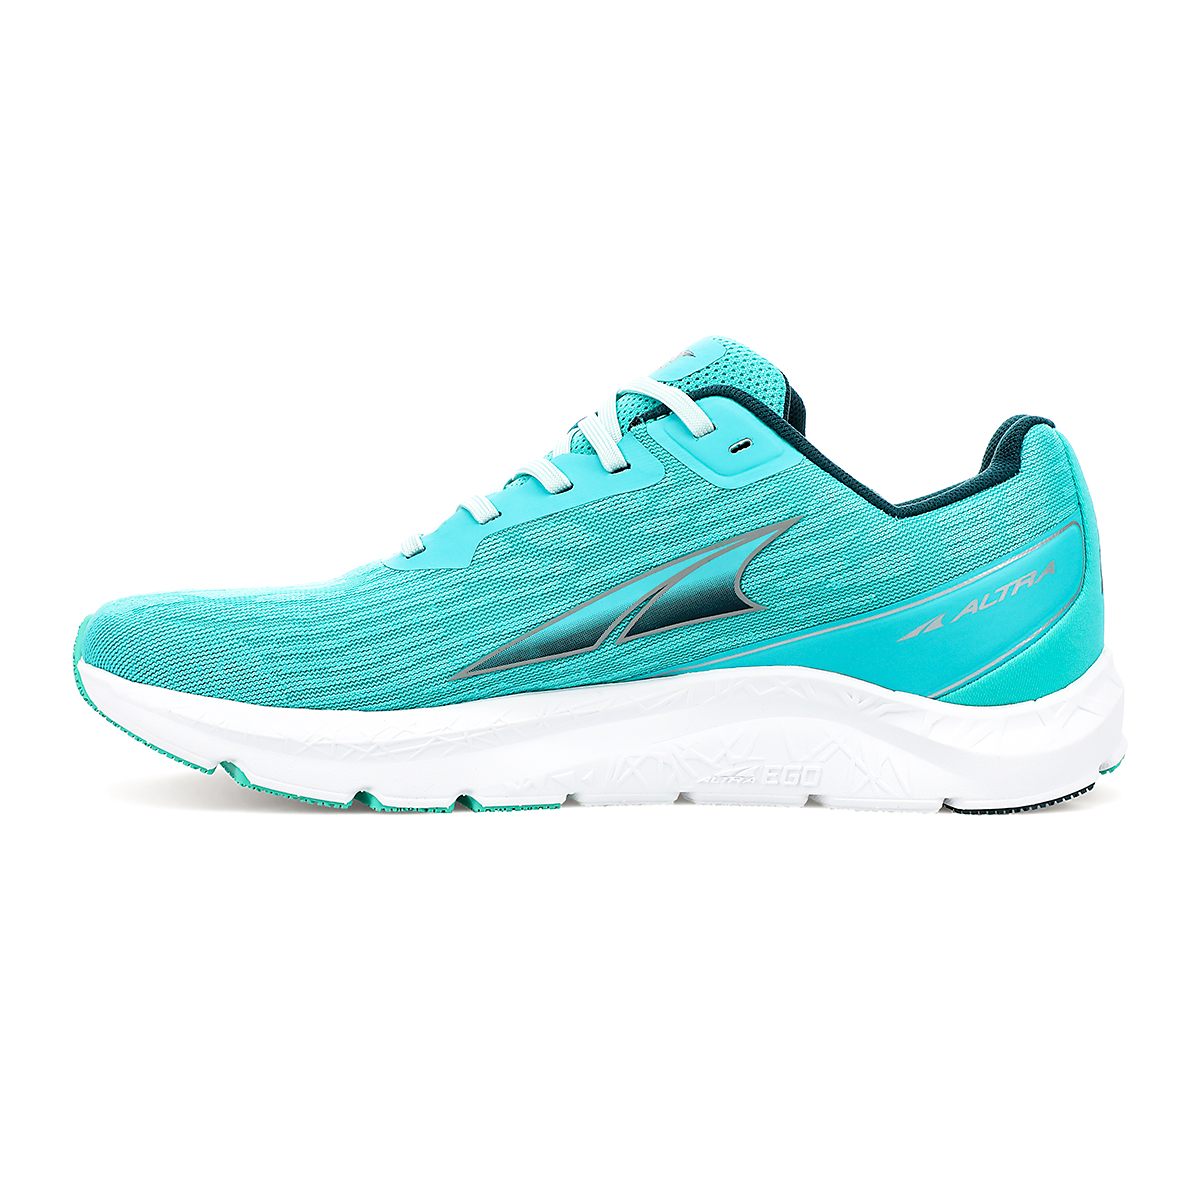 Women's Altra Rivera Running Shoe - Color: Teal/Green - Size: 5.5 - Width: Regular, Teal/Green, large, image 2